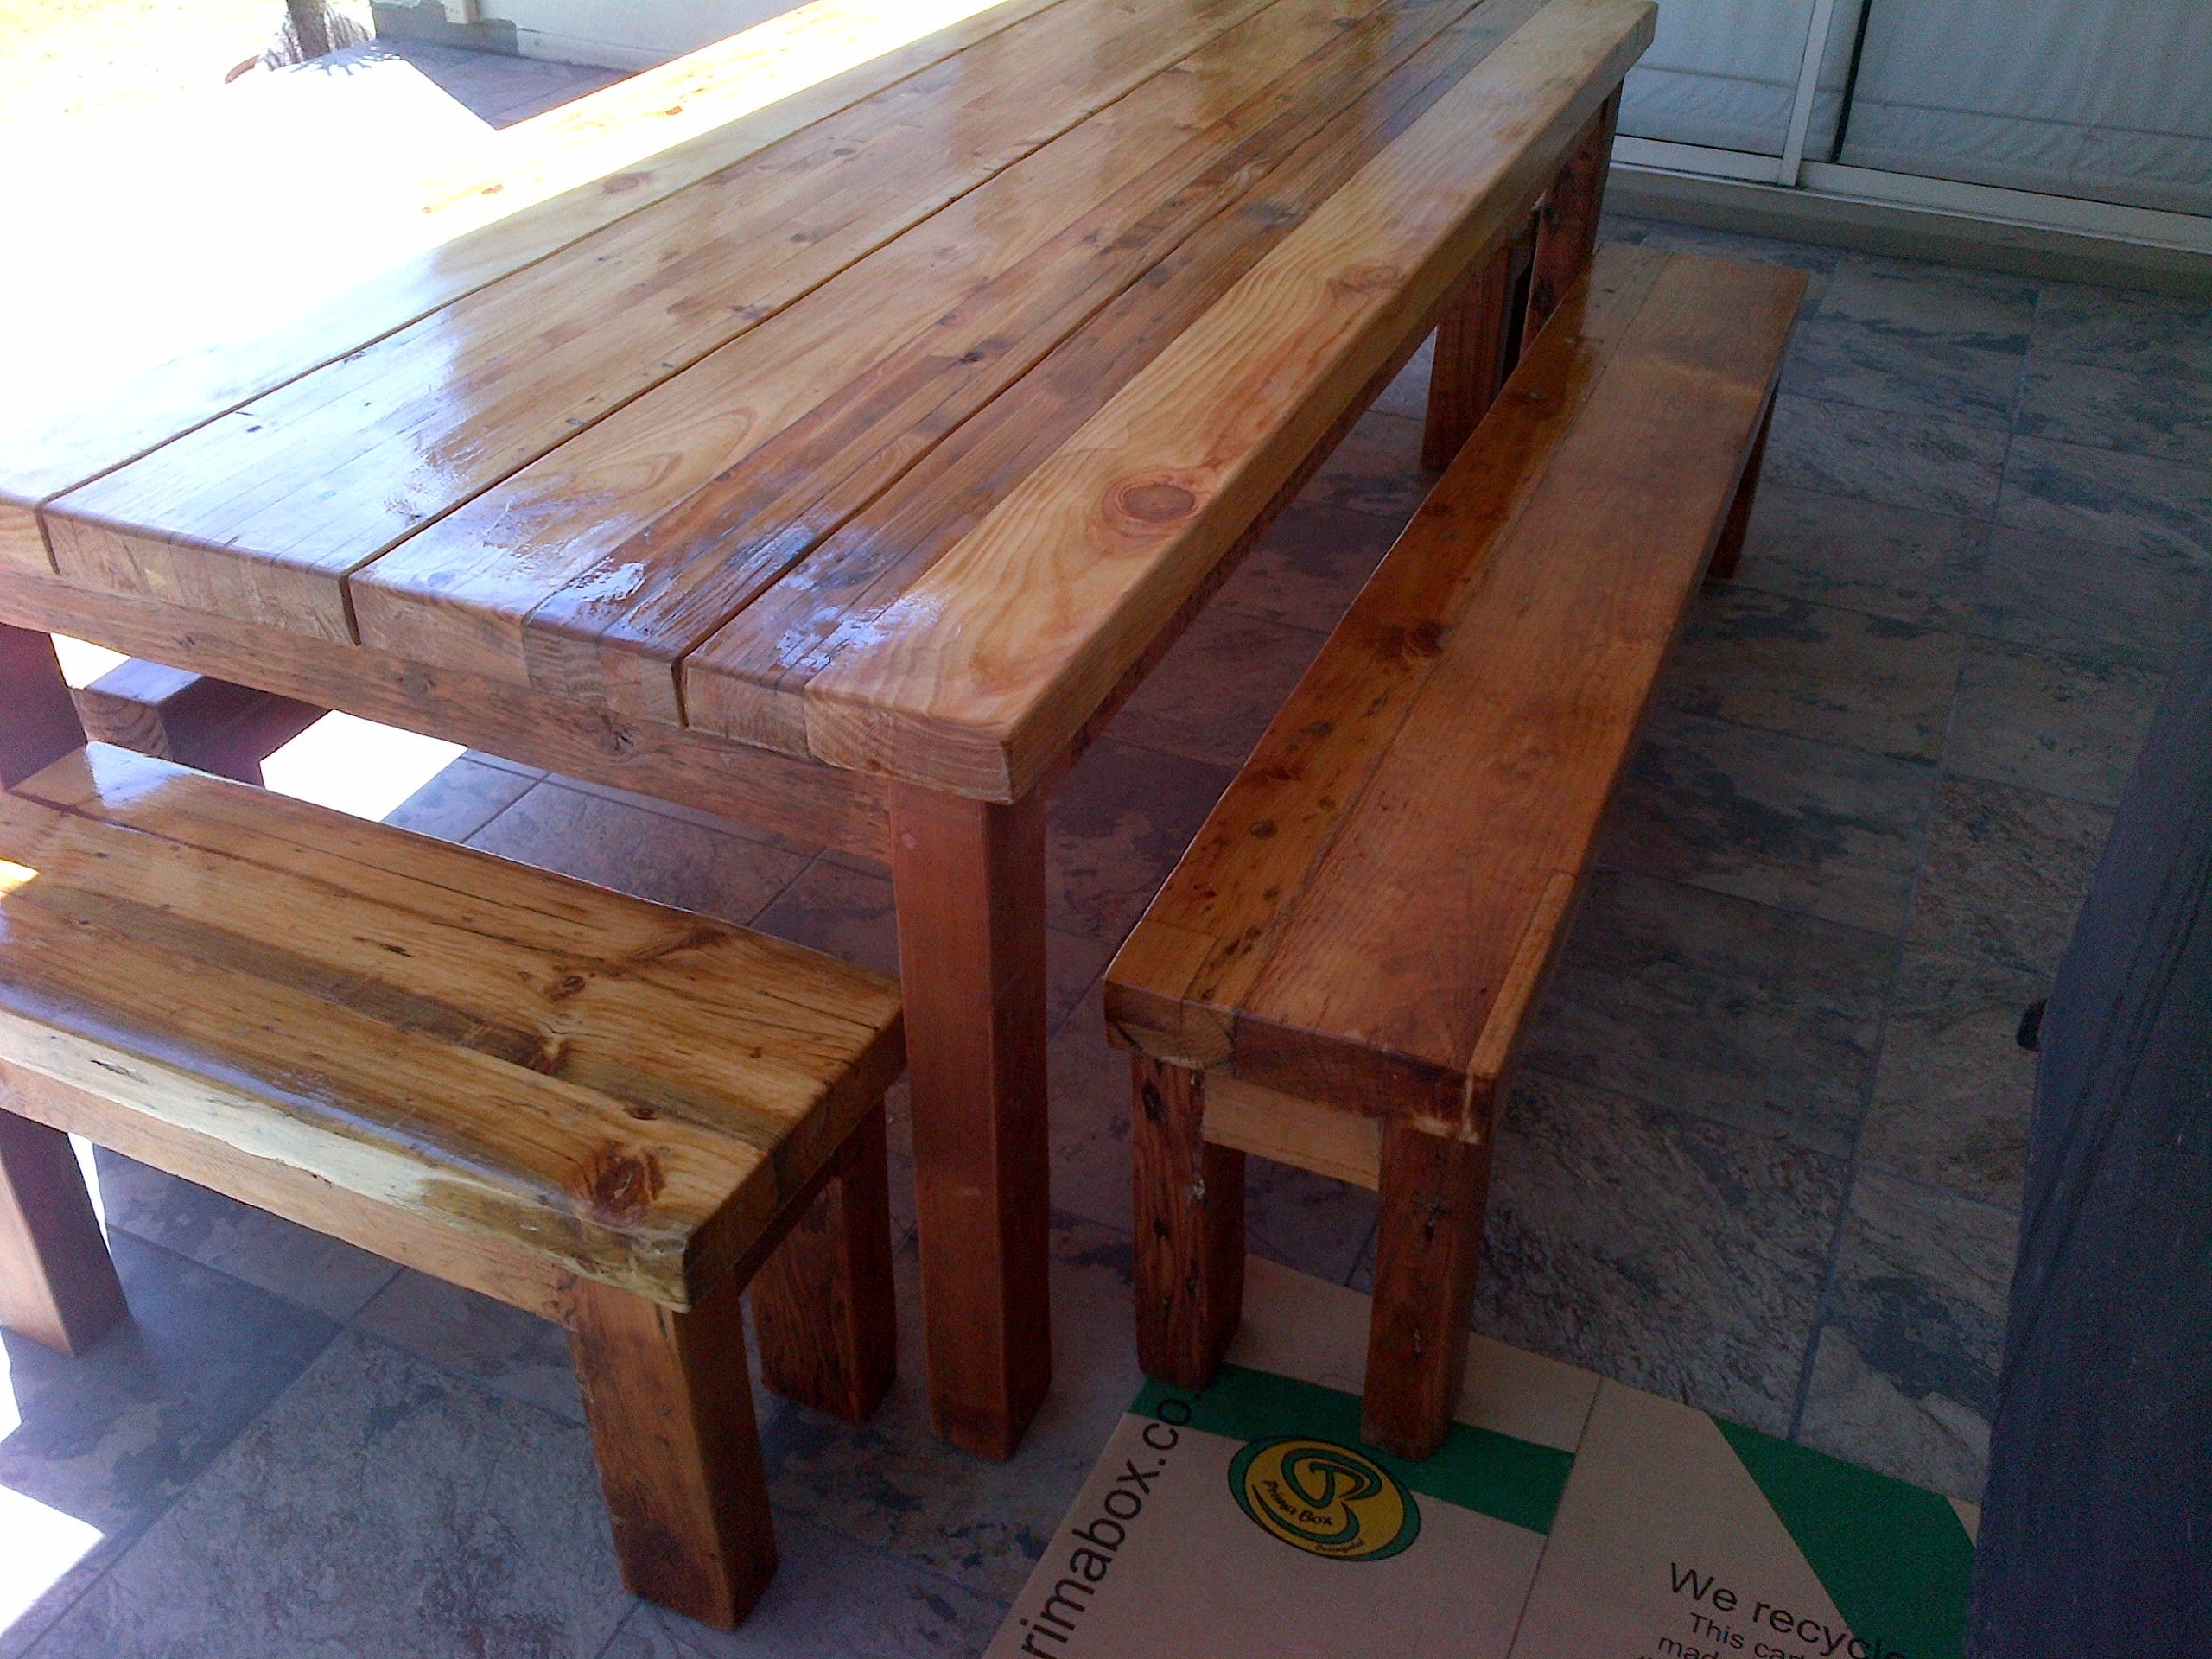 Rustic Dining Room Table Seats 10 Recycled And Reclaimed Wood With Natural Legs Oregon Pine Outdoors Benches